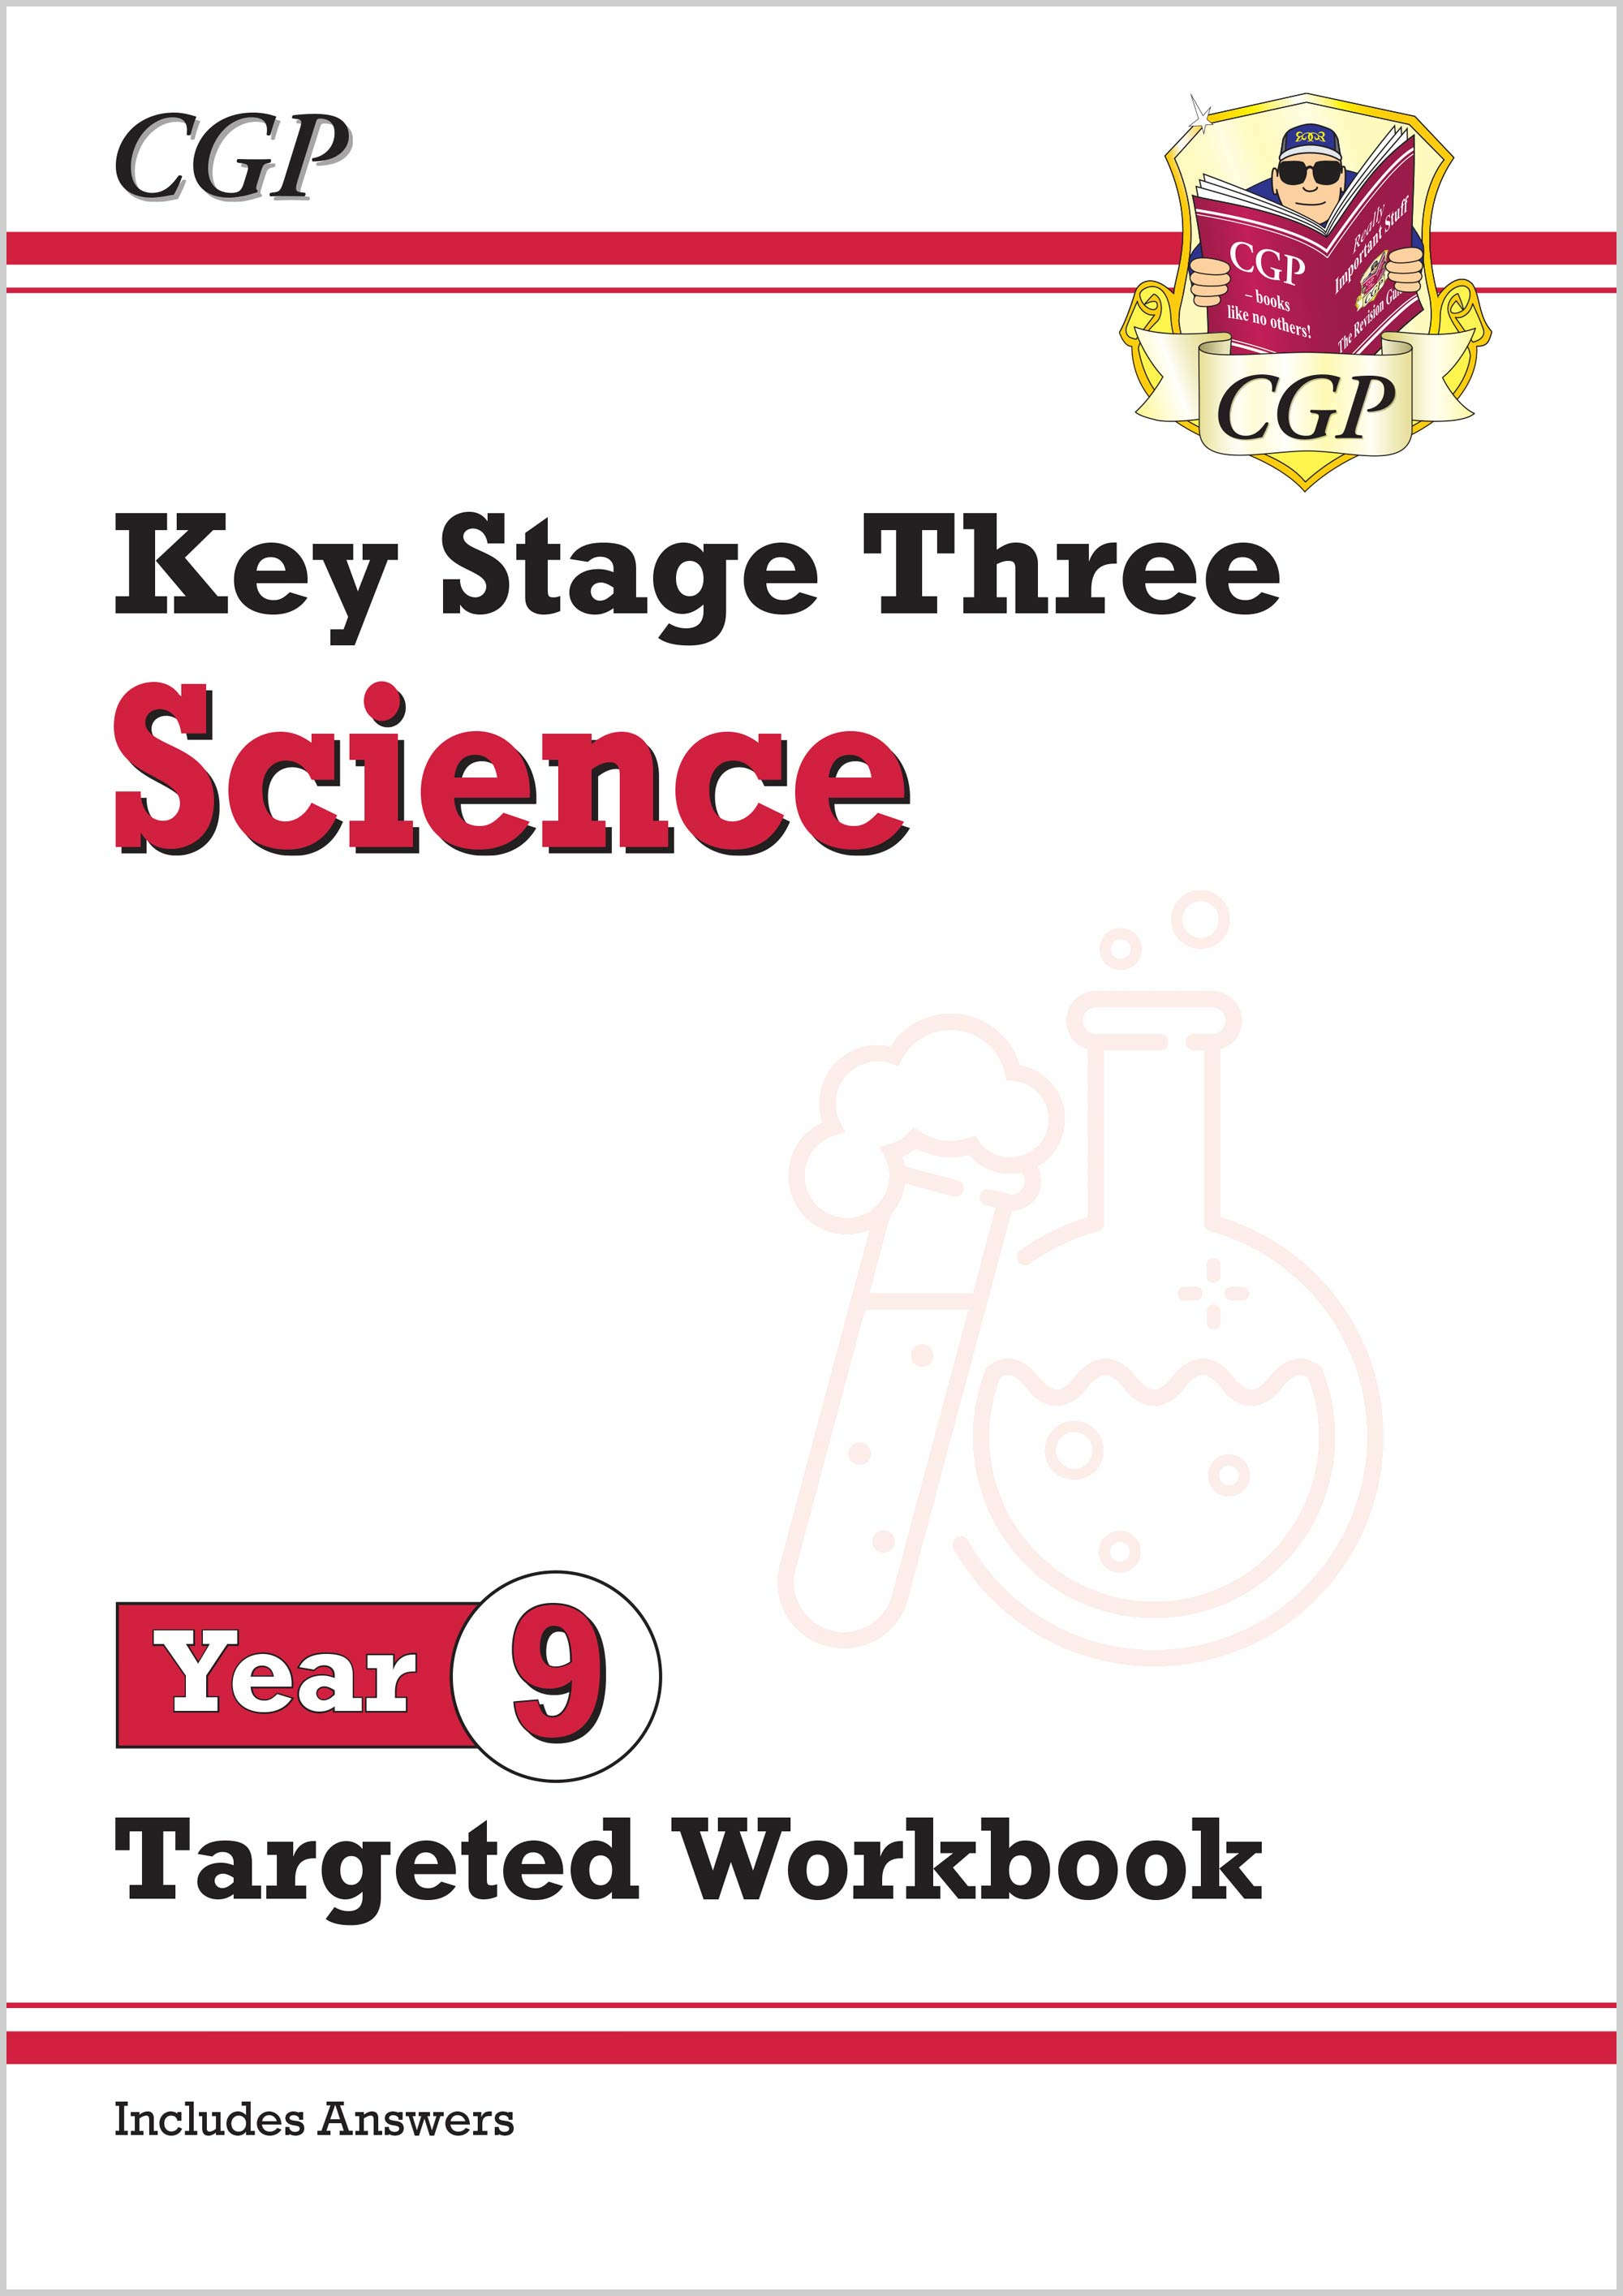 S9W32 - KS3 Science Year 9 Targeted Workbook (with answers)